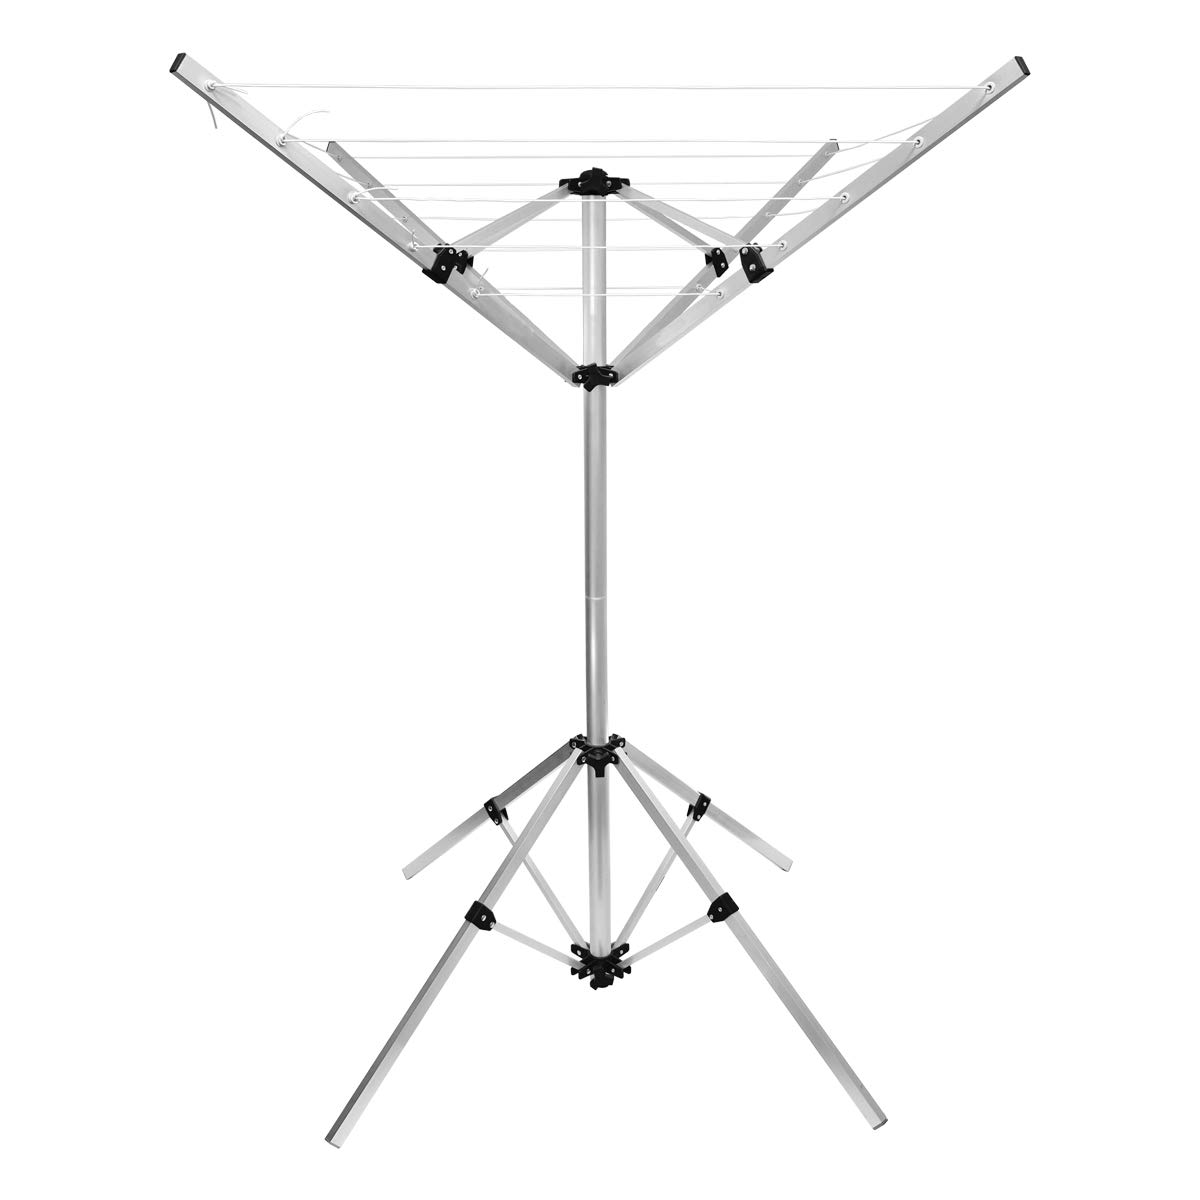 ECD-Germany Rotary 16m Mobile Drier 4 Arms 4 Legs Stabile Garden Laundry Airer WheaterProof ECD Germany